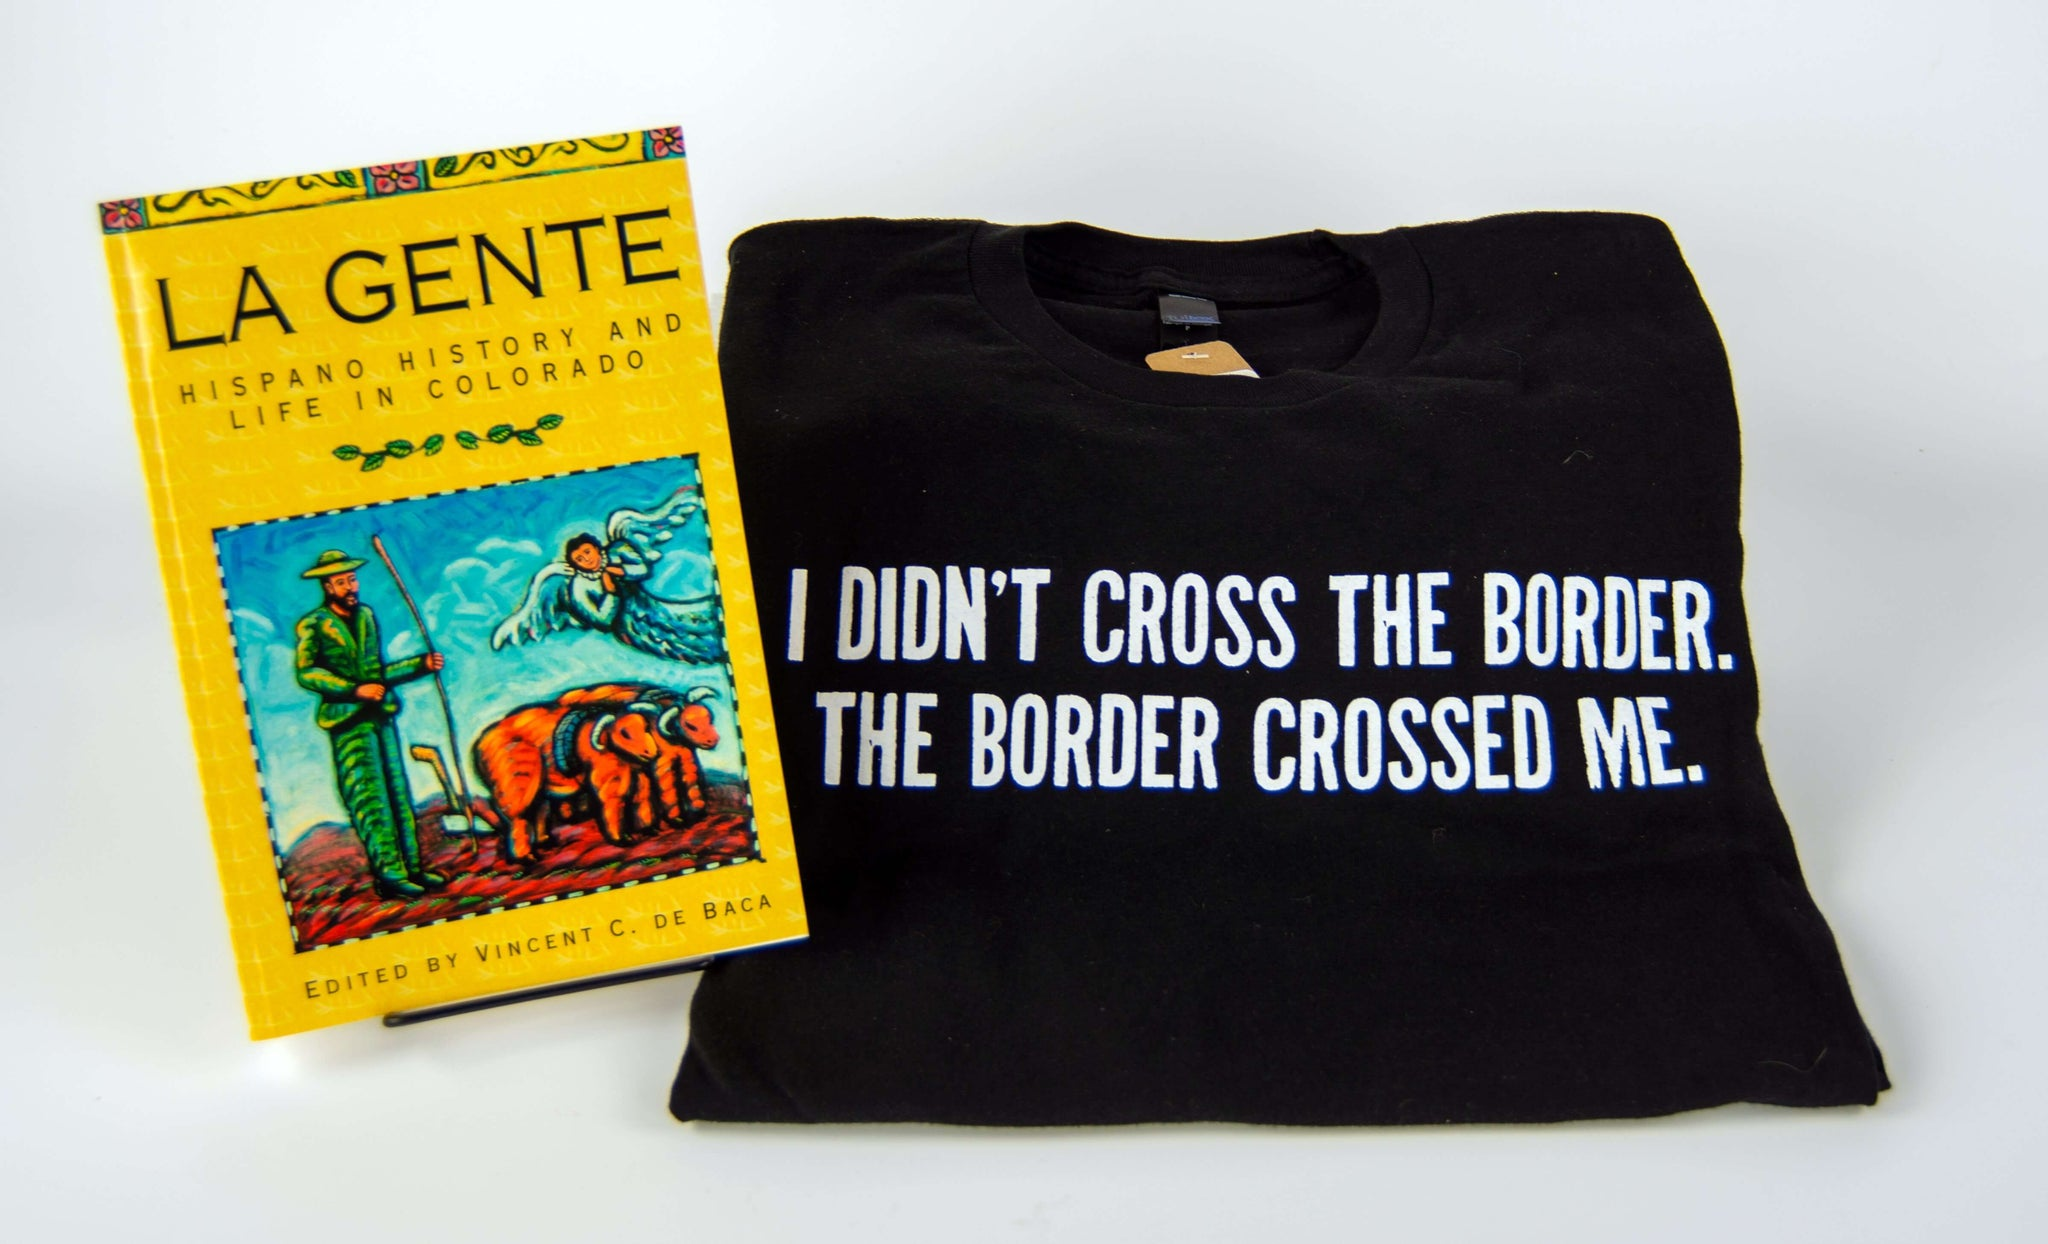 Borderlands of Southern Colorado Bundle from the History Colorado Shop includes a black History Colorado t-shirt and the La Gente book